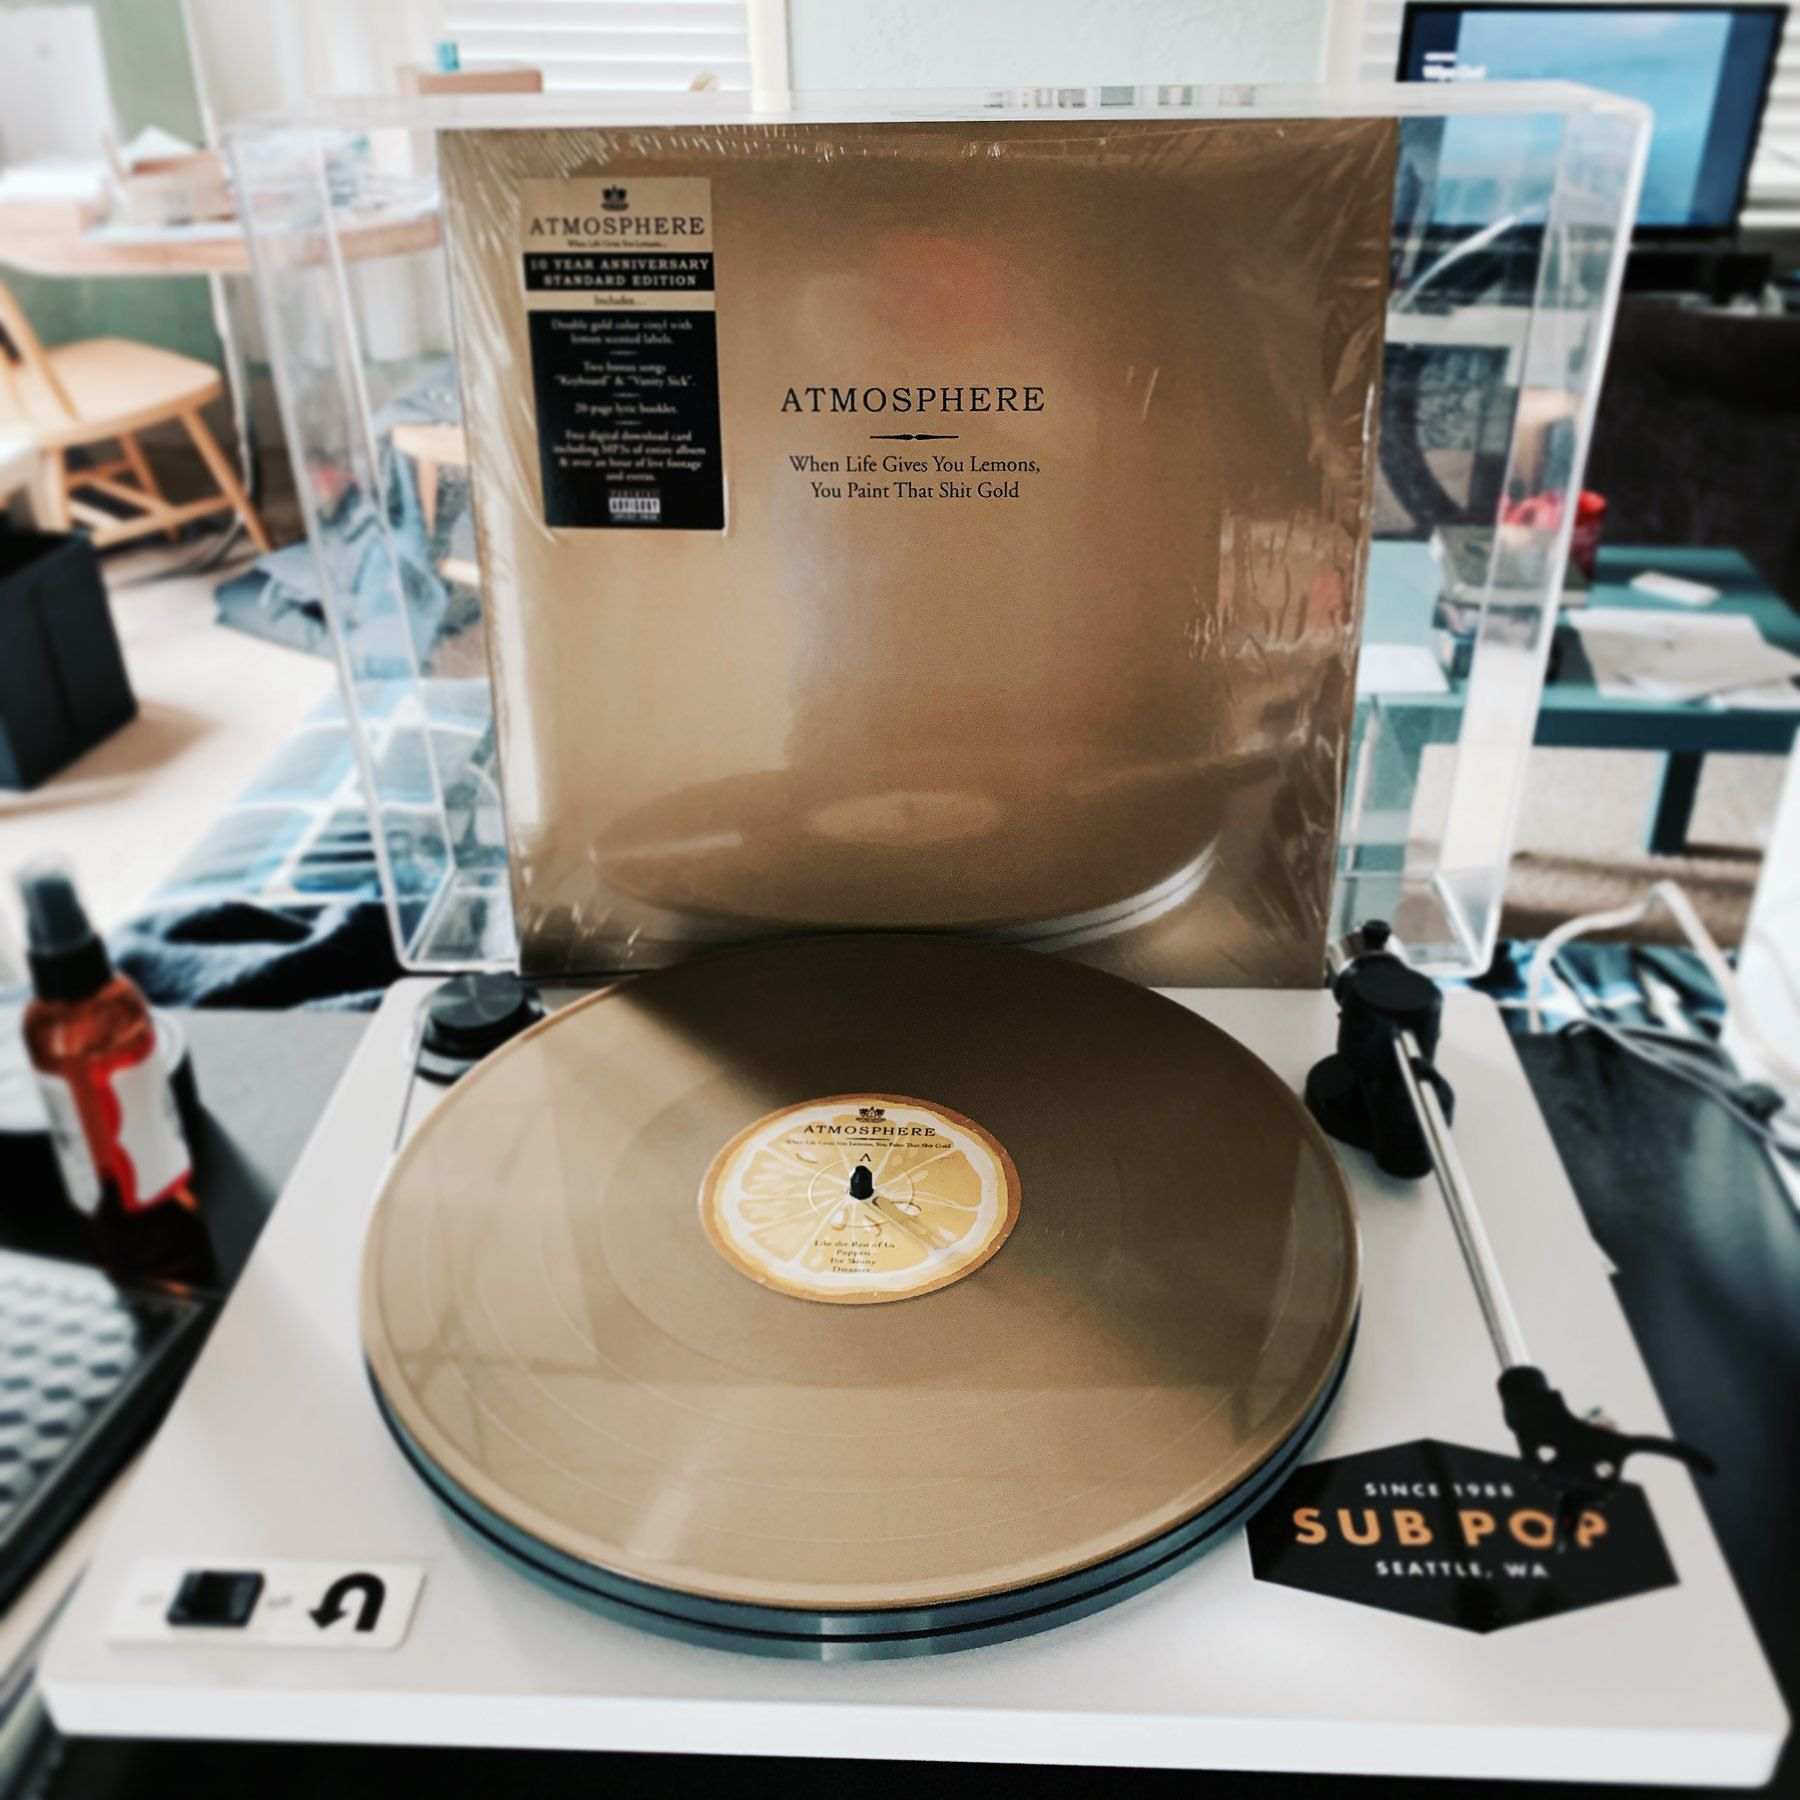 Gold Vinyl album by Atmosphere on a white turntable